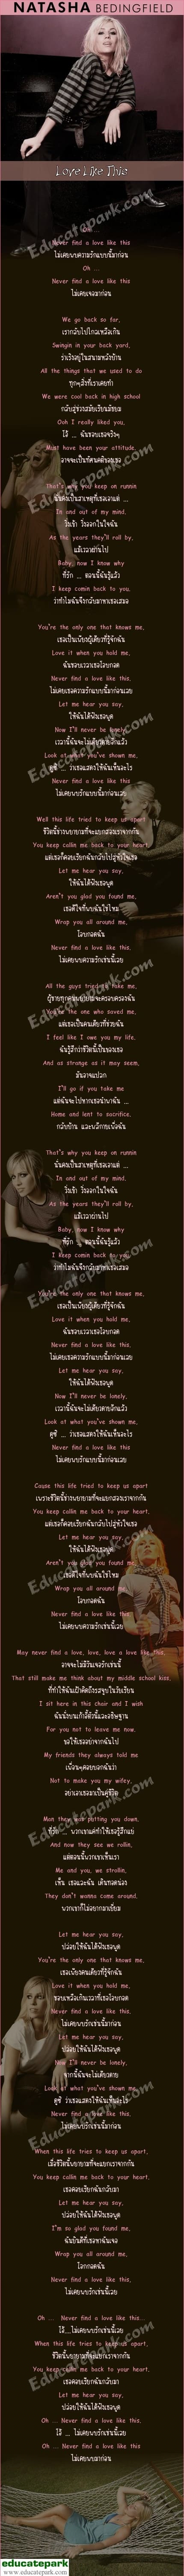 แปลเพลง Love Like This - NATASHA BEDINGFIELD